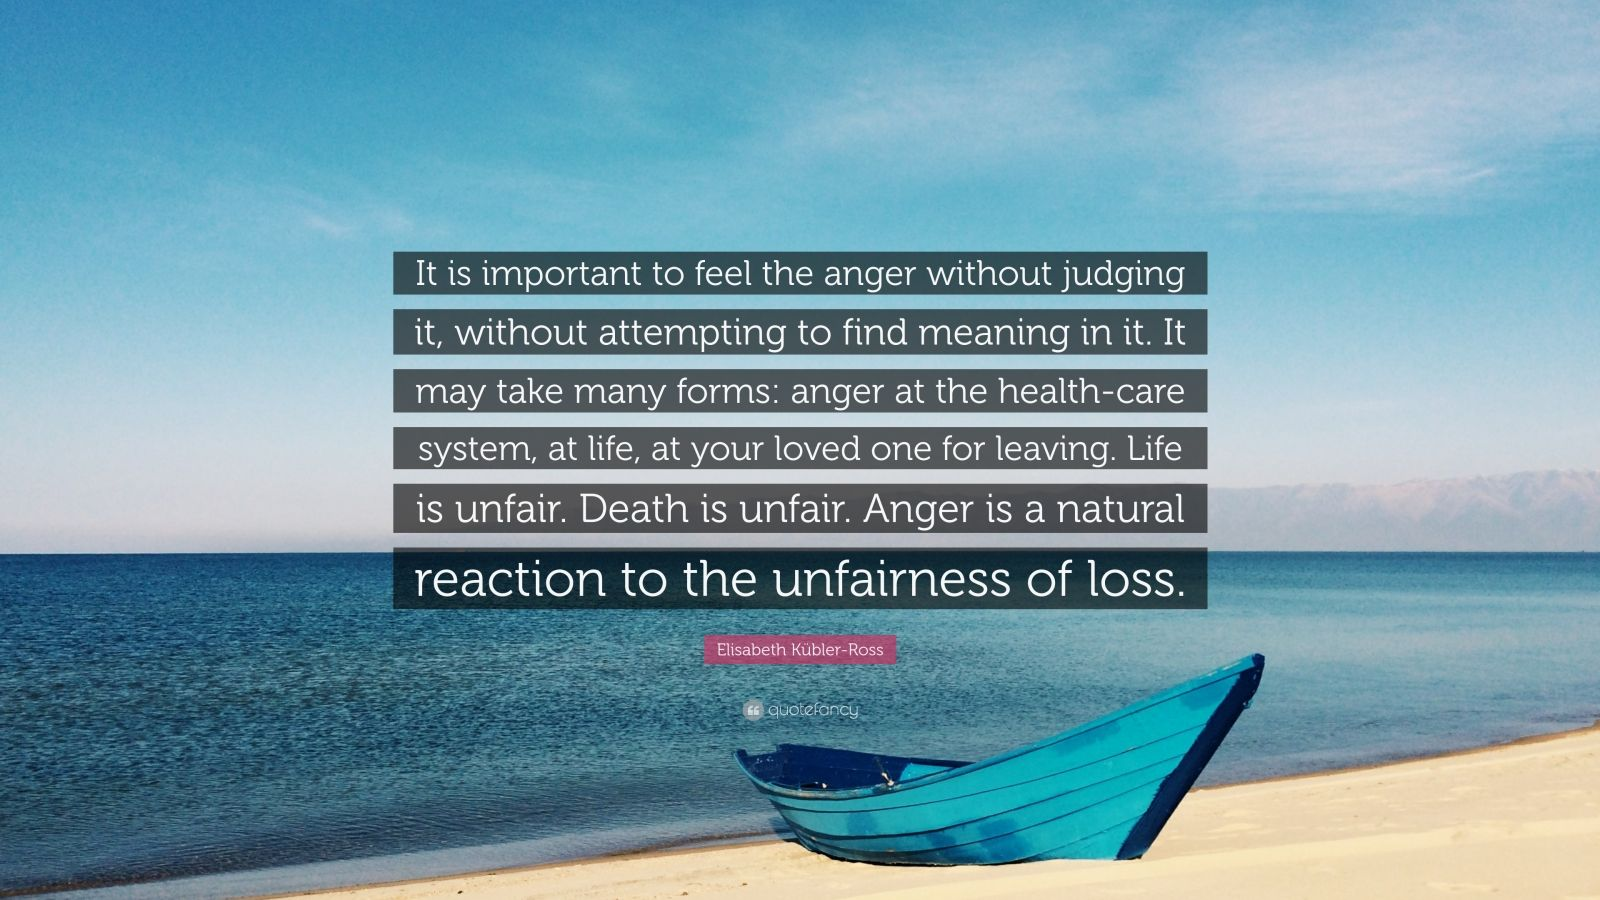 """Elisabeth Kübler-Ross Quote: """"It is important to feel the anger without judging it, without attempting to find meaning in it. It may take many forms: anger at the health-care system, at life, at your loved one for leaving. Life is unfair. Death is unfair. Anger is a natural reaction to the unfairness of loss."""""""